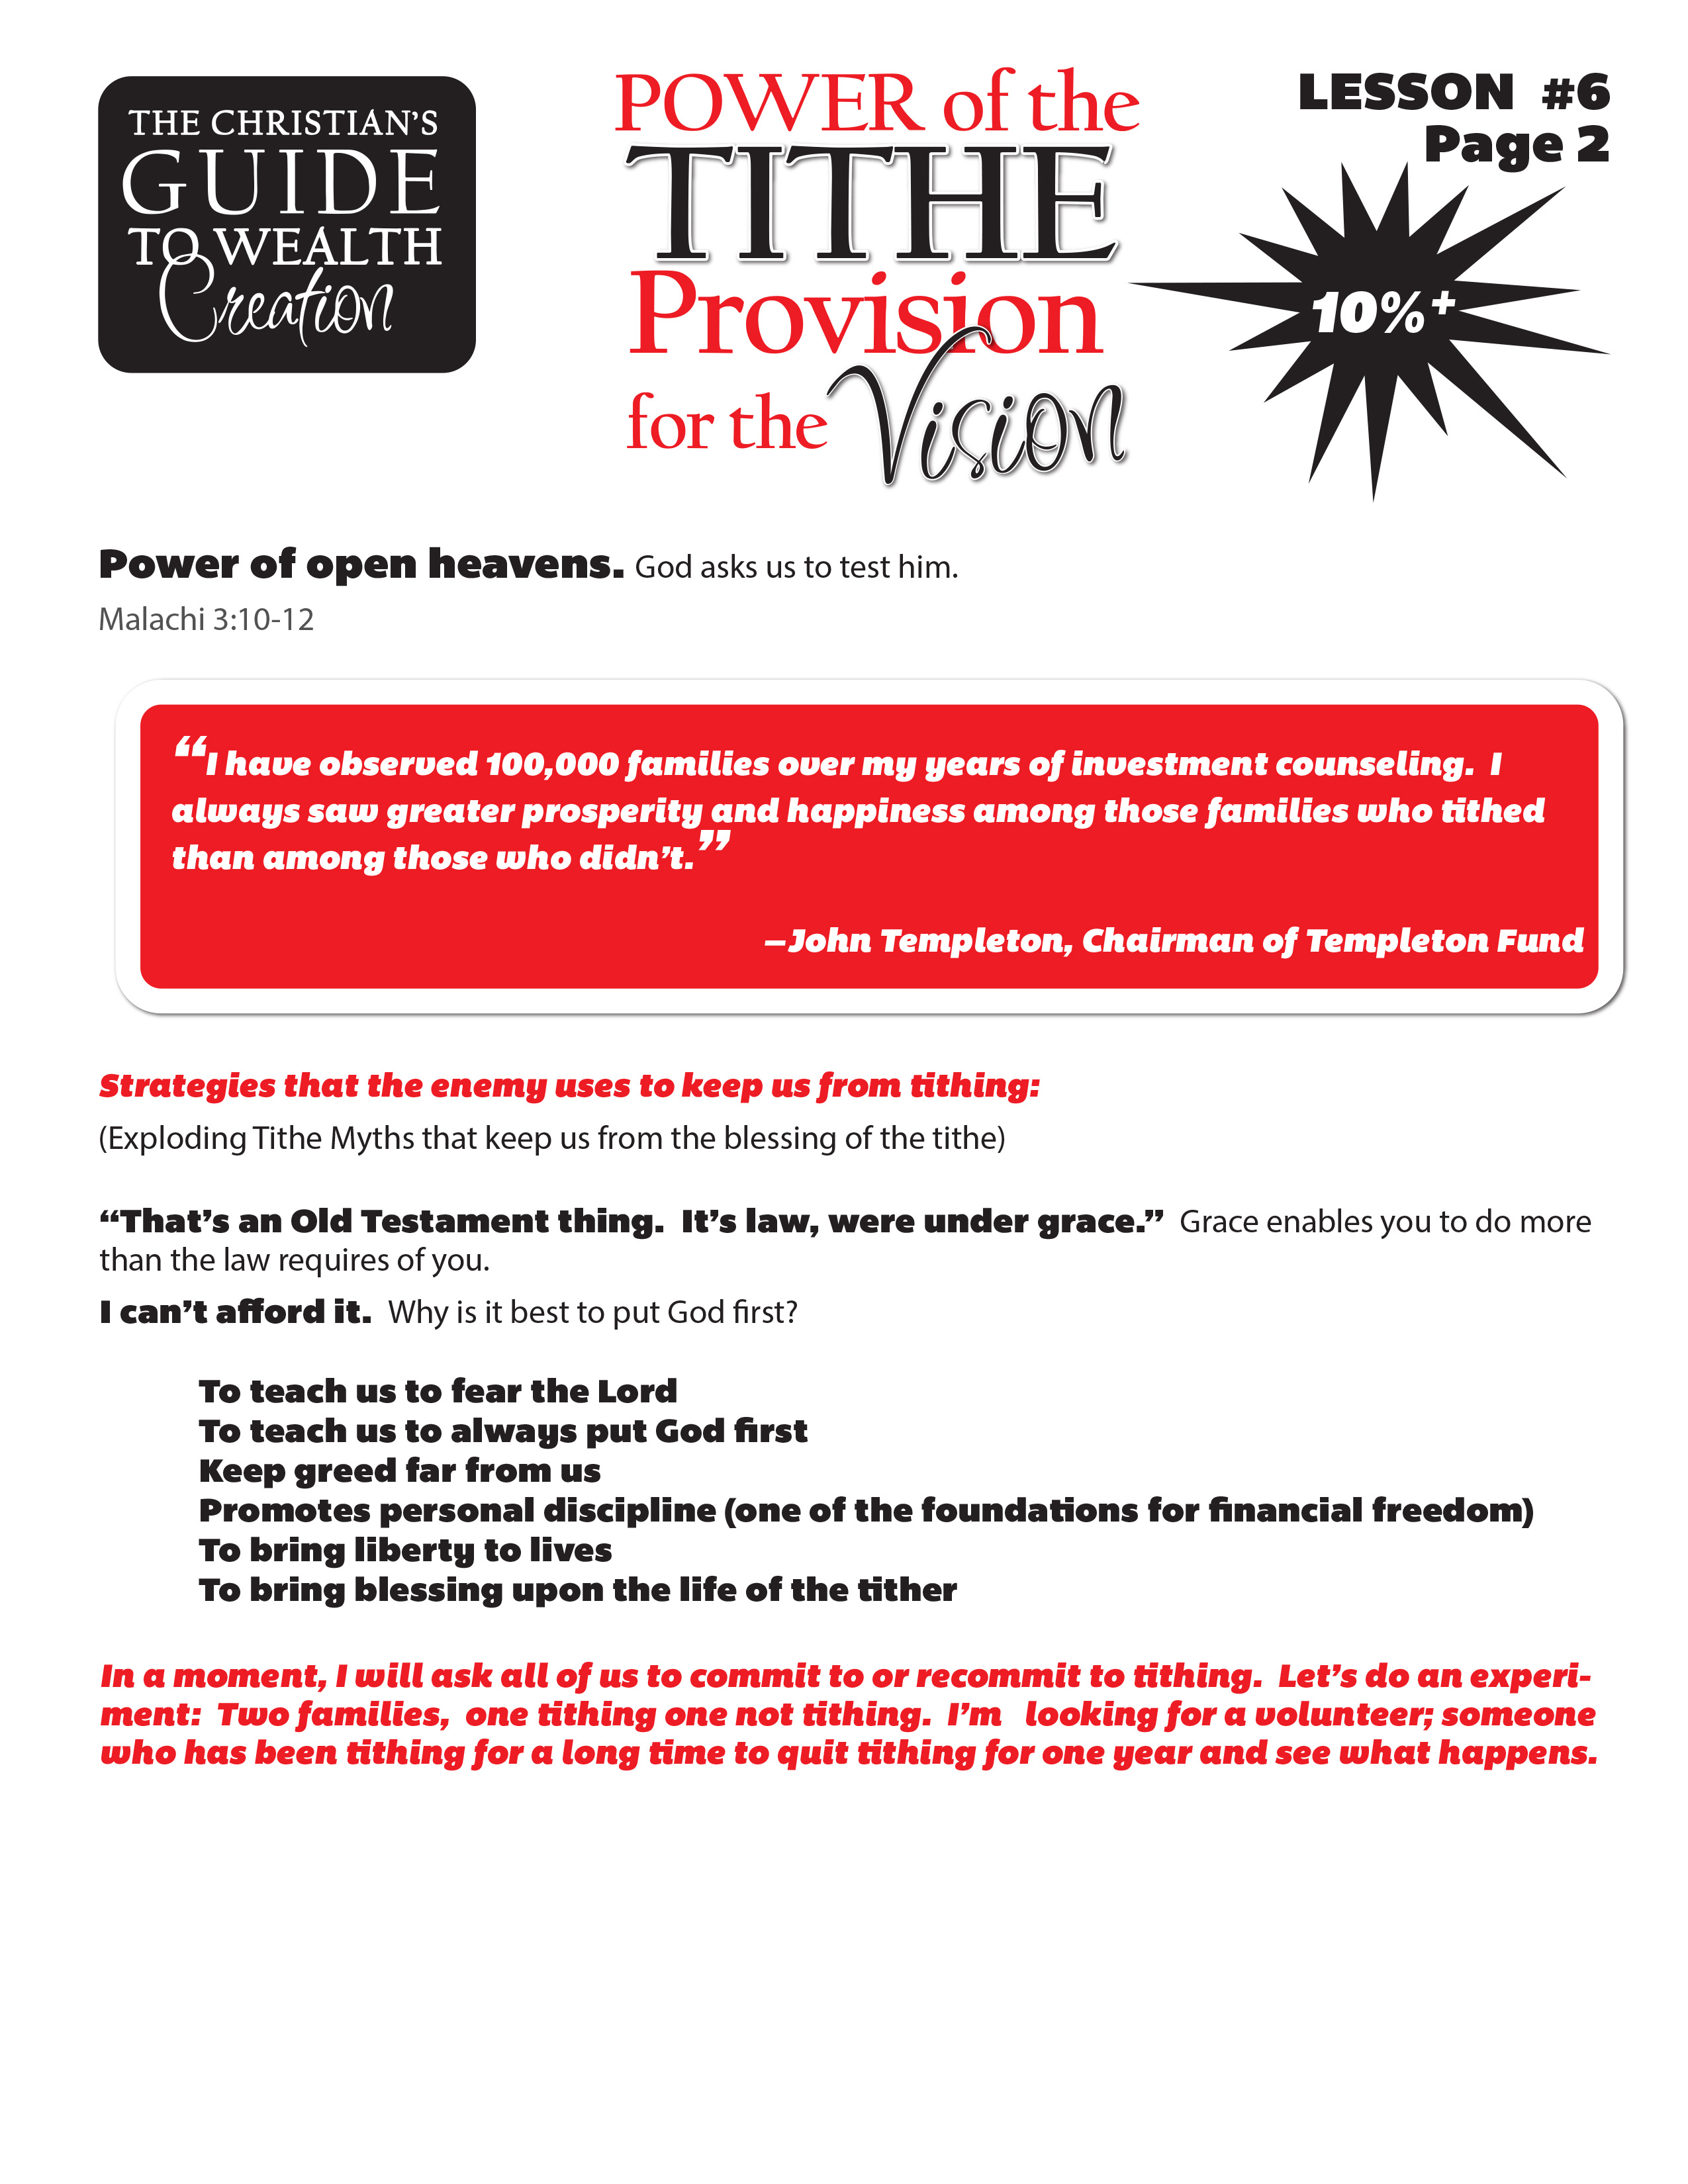 Lesson 6 Power of the Tithe - Provision for the Vision page 2.jpg